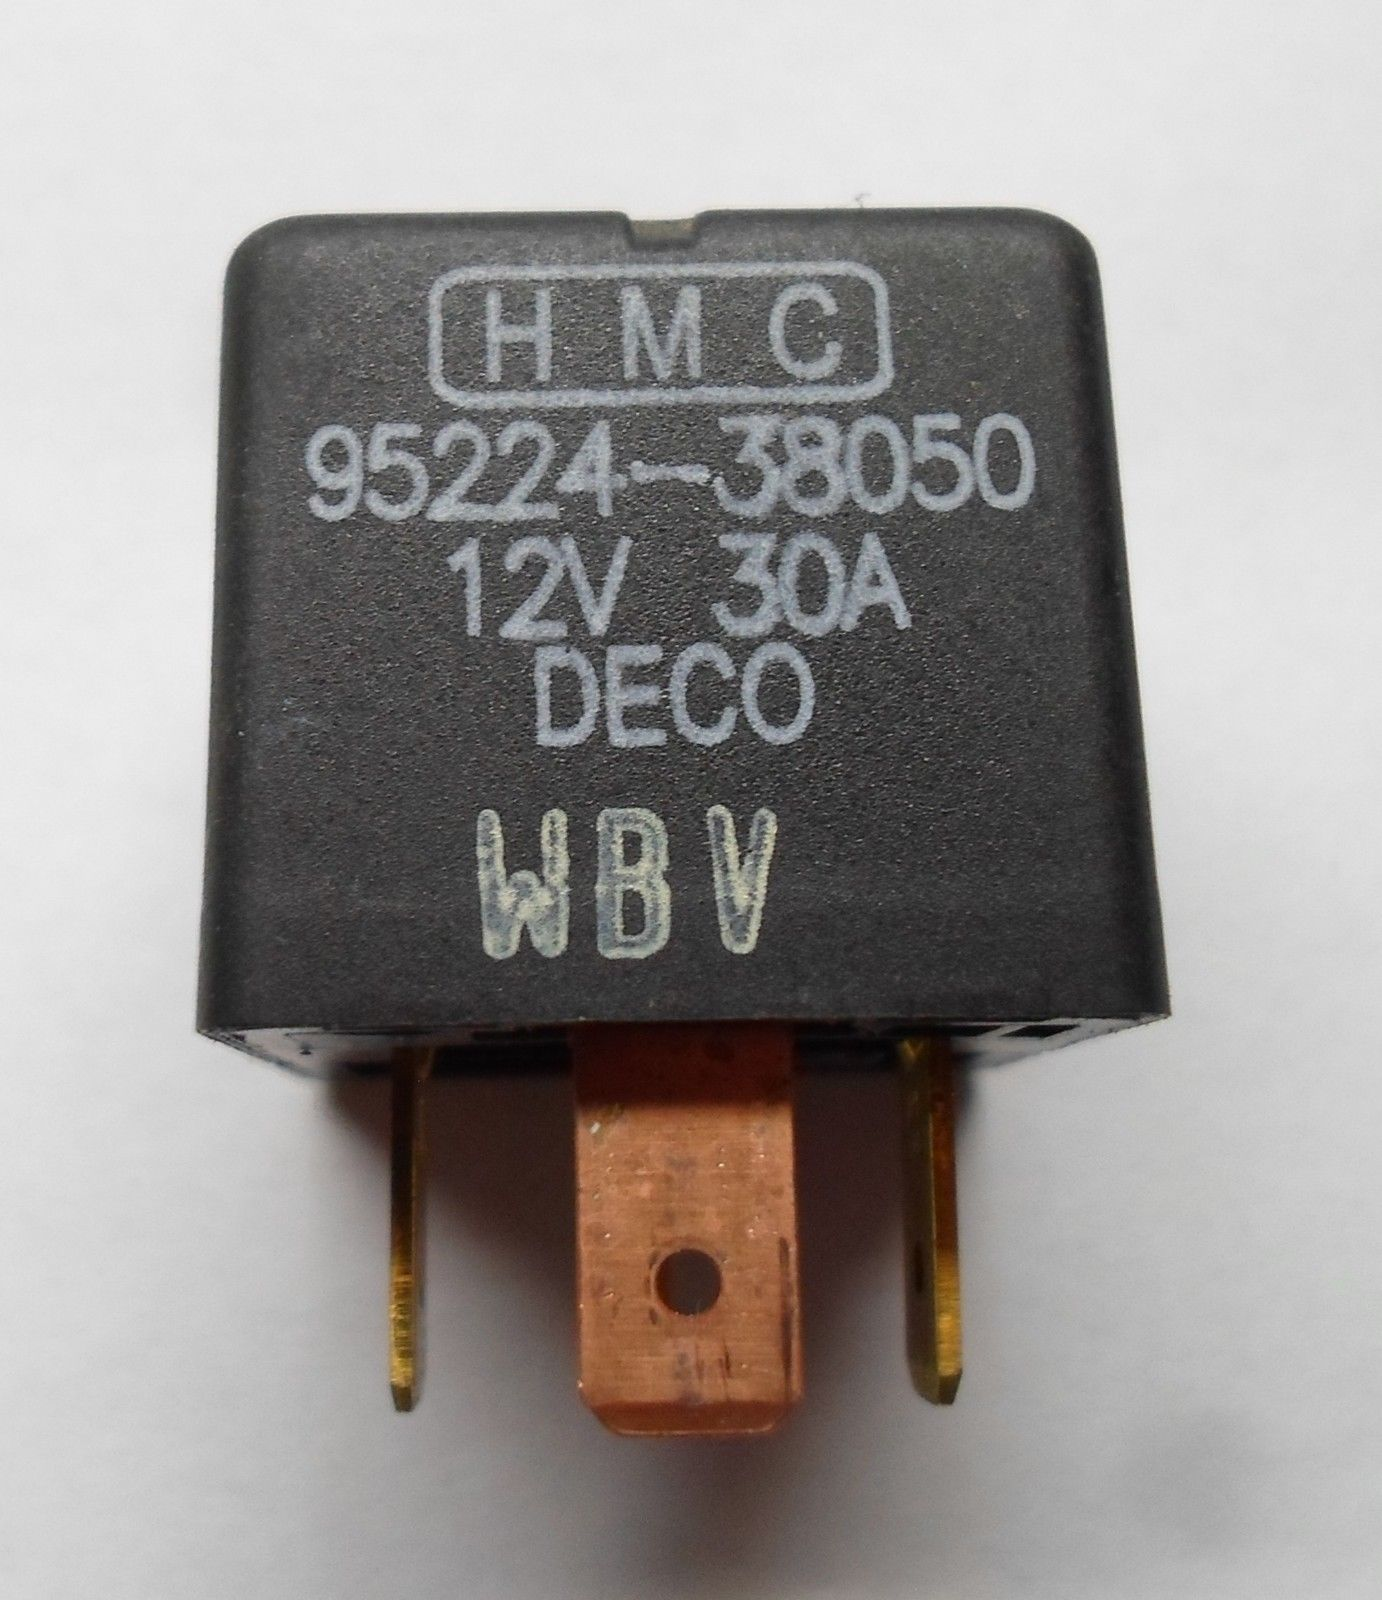 HYUNDAI KIA 95224-38050 RELAY OEM TESTED 6 MONTH WARRANTY FREE SHIPPING!  HY3